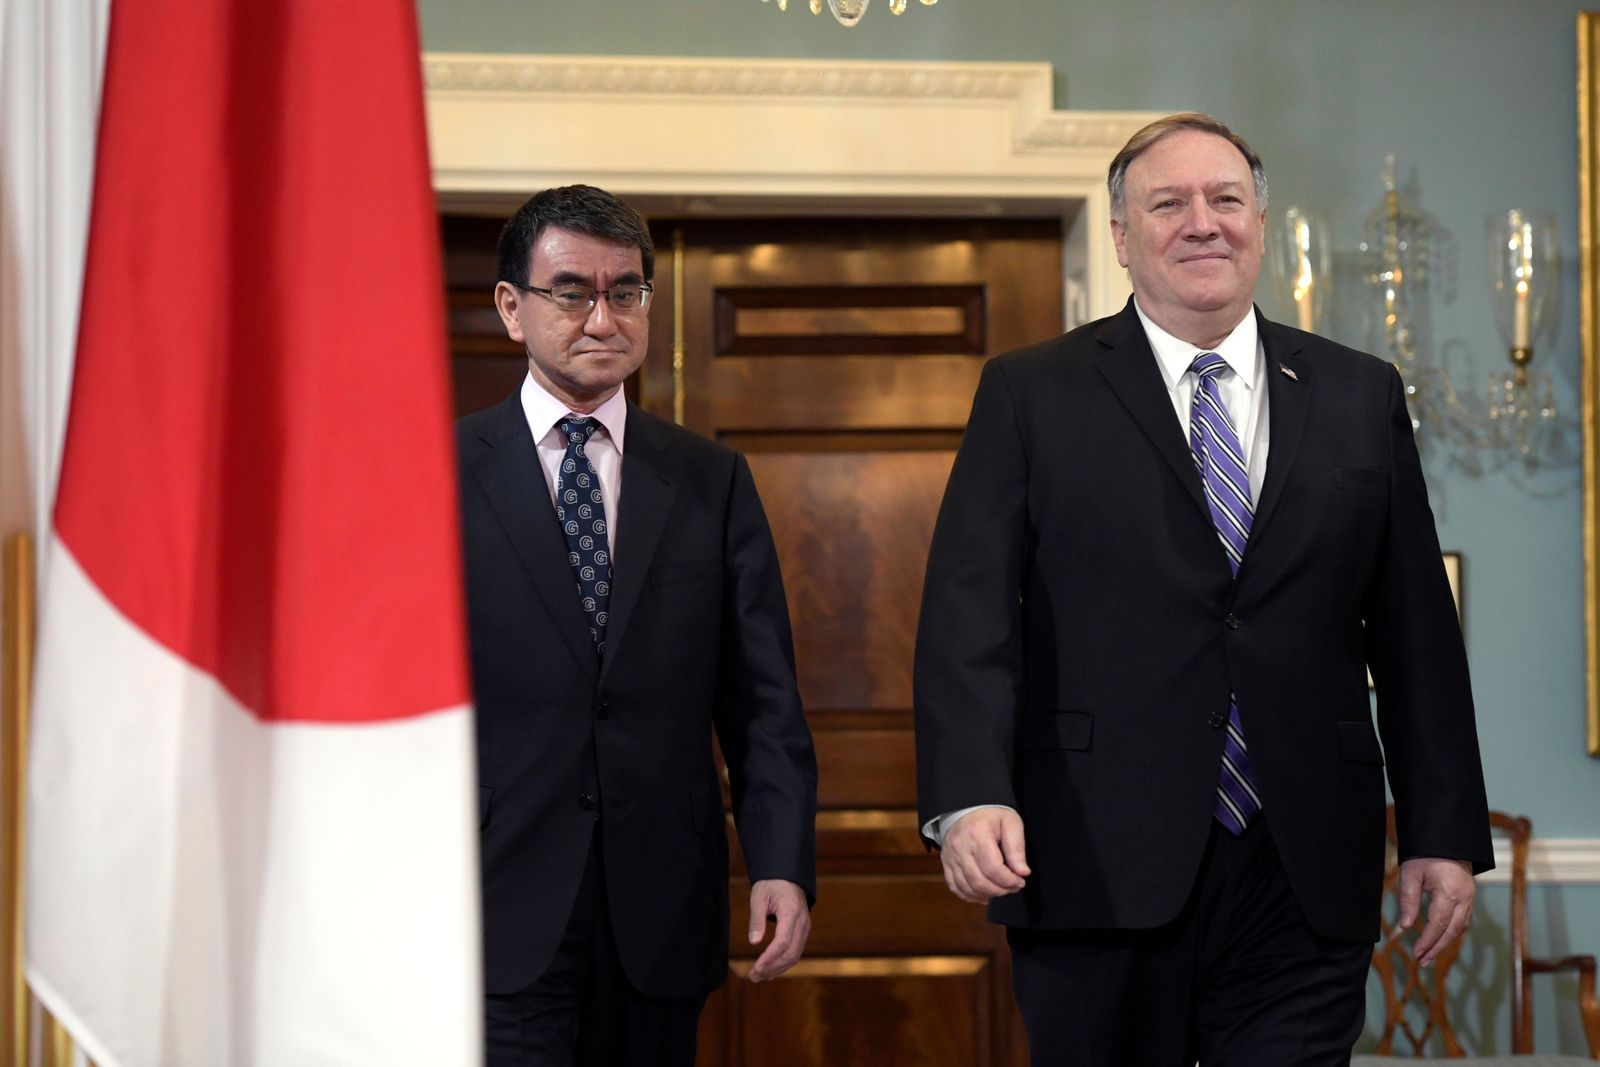 Secretary of State Mike Pompeo, right, arrives with Japanese Foreign Minister Taro Kono on Friday, April 19, 2019, at the Department of State in Washington. (AP Photo/Sait Serkan Gurbuz)